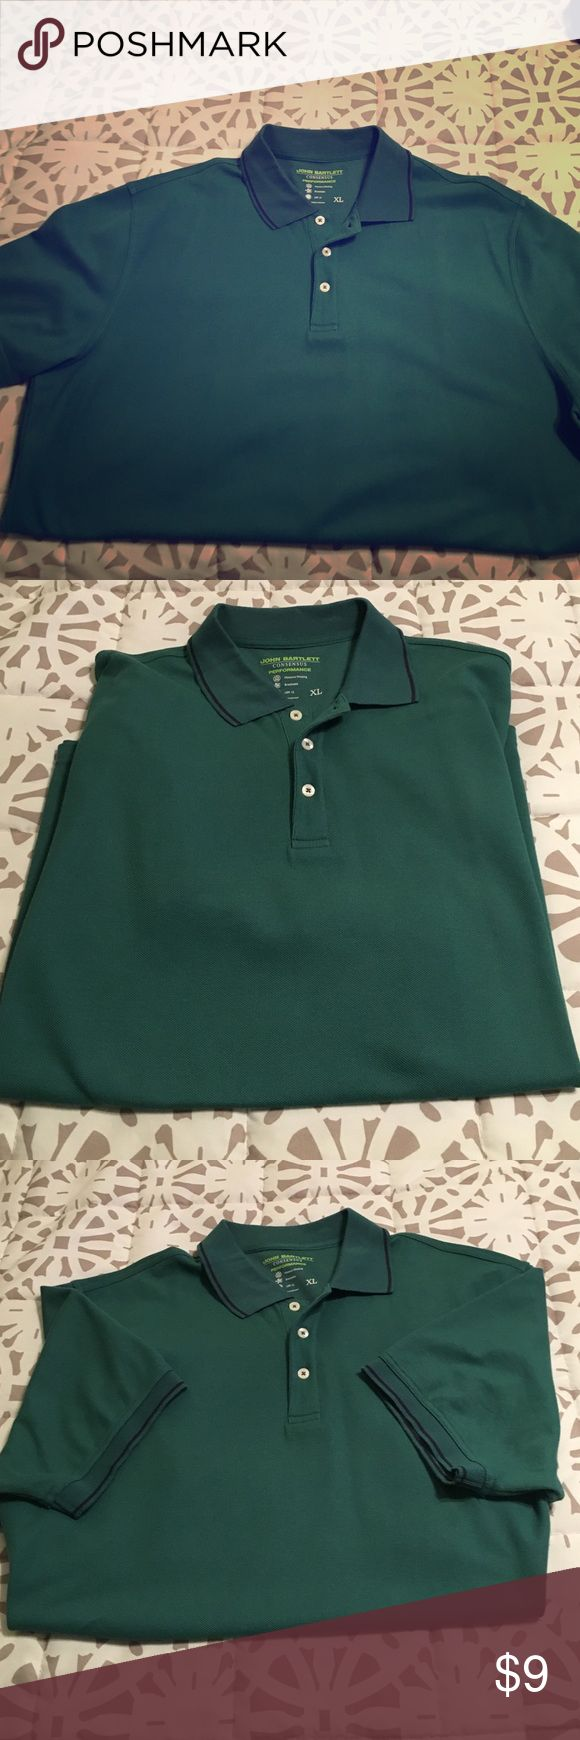 Men's short sleeve polo Men's short sleeve polo shirt. 3 buttons on front with collar. Never worn, no tags john bartlett Shirts Polos